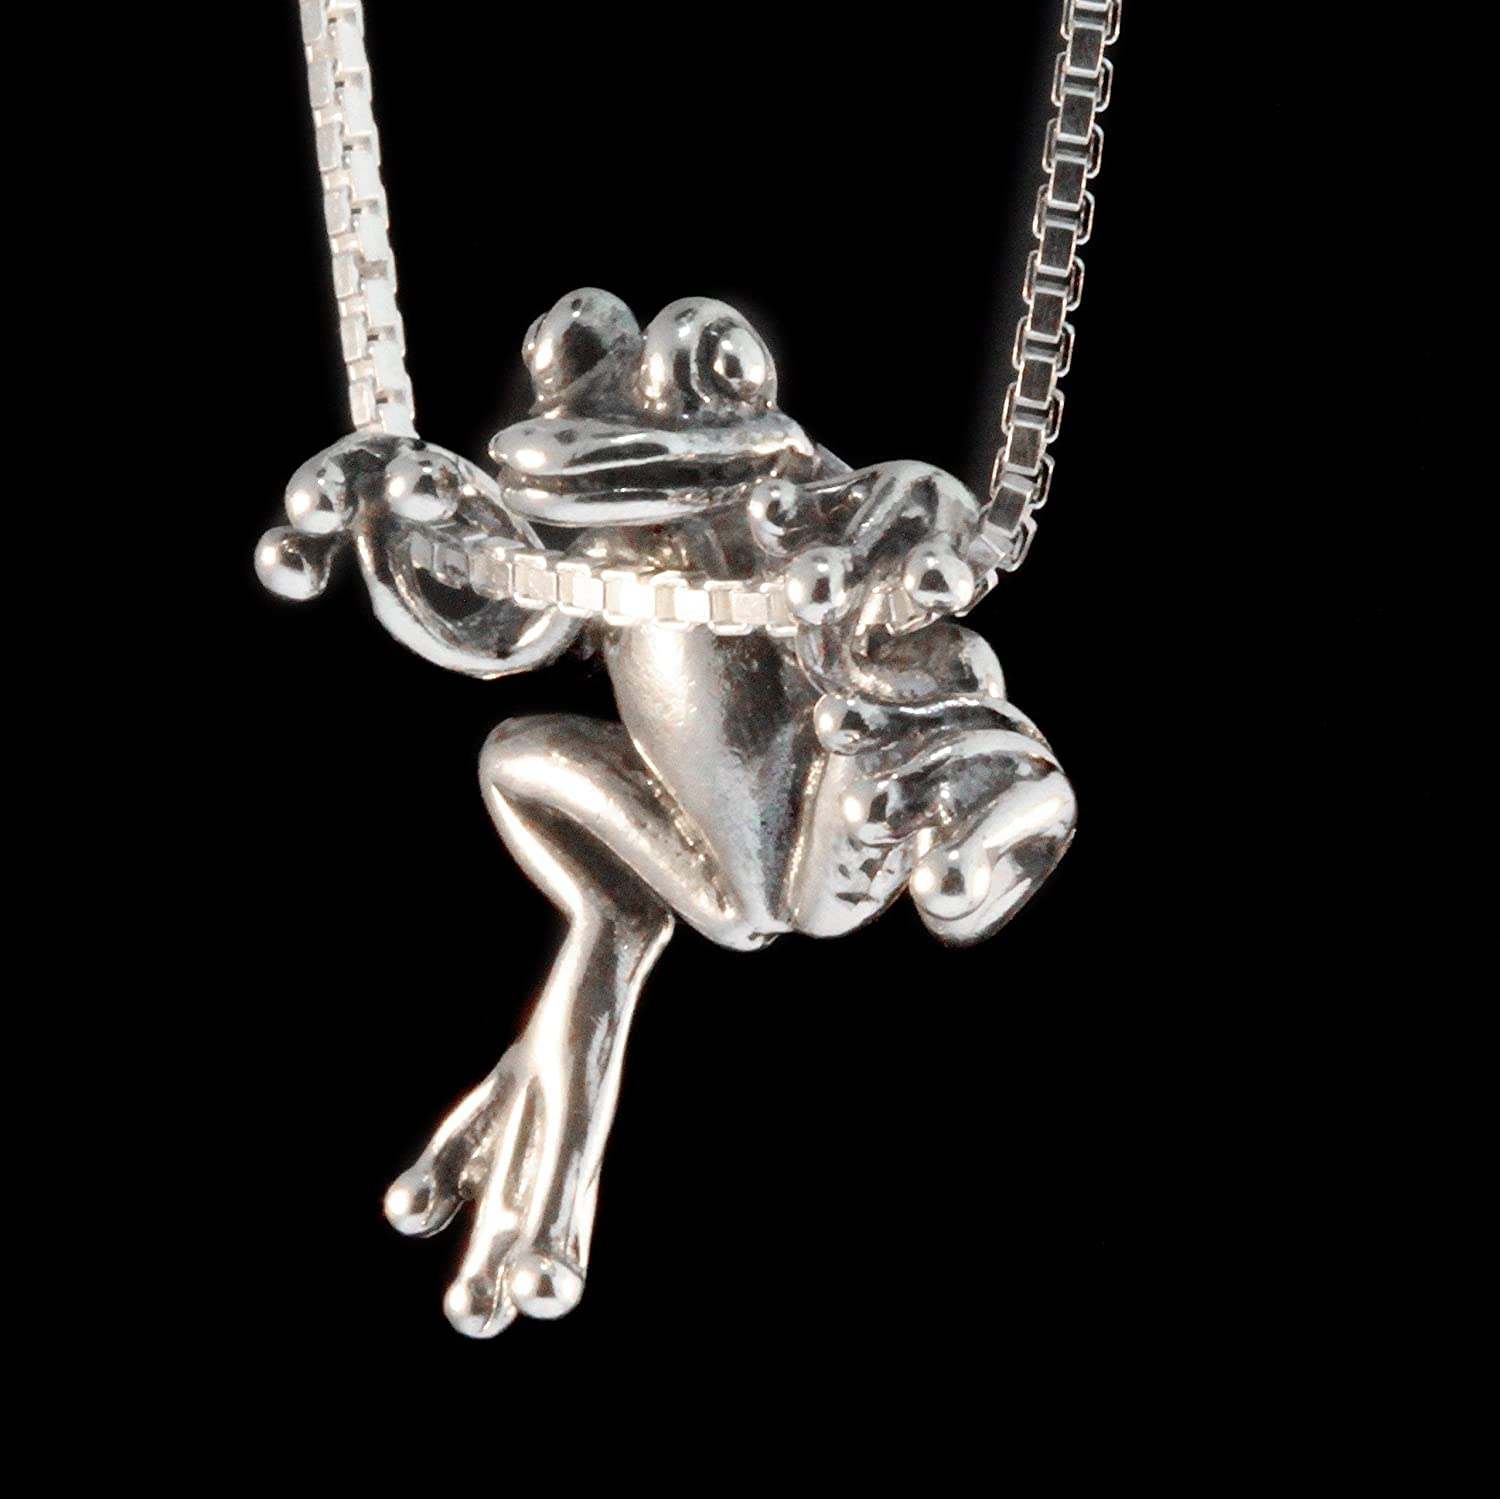 Frog Charm Vintage Frog Charm 925 Silver Nature STERLING silver FROG  BAMBOOK Fine jewelry Stylish pendant Animal Charm Frog Pendant